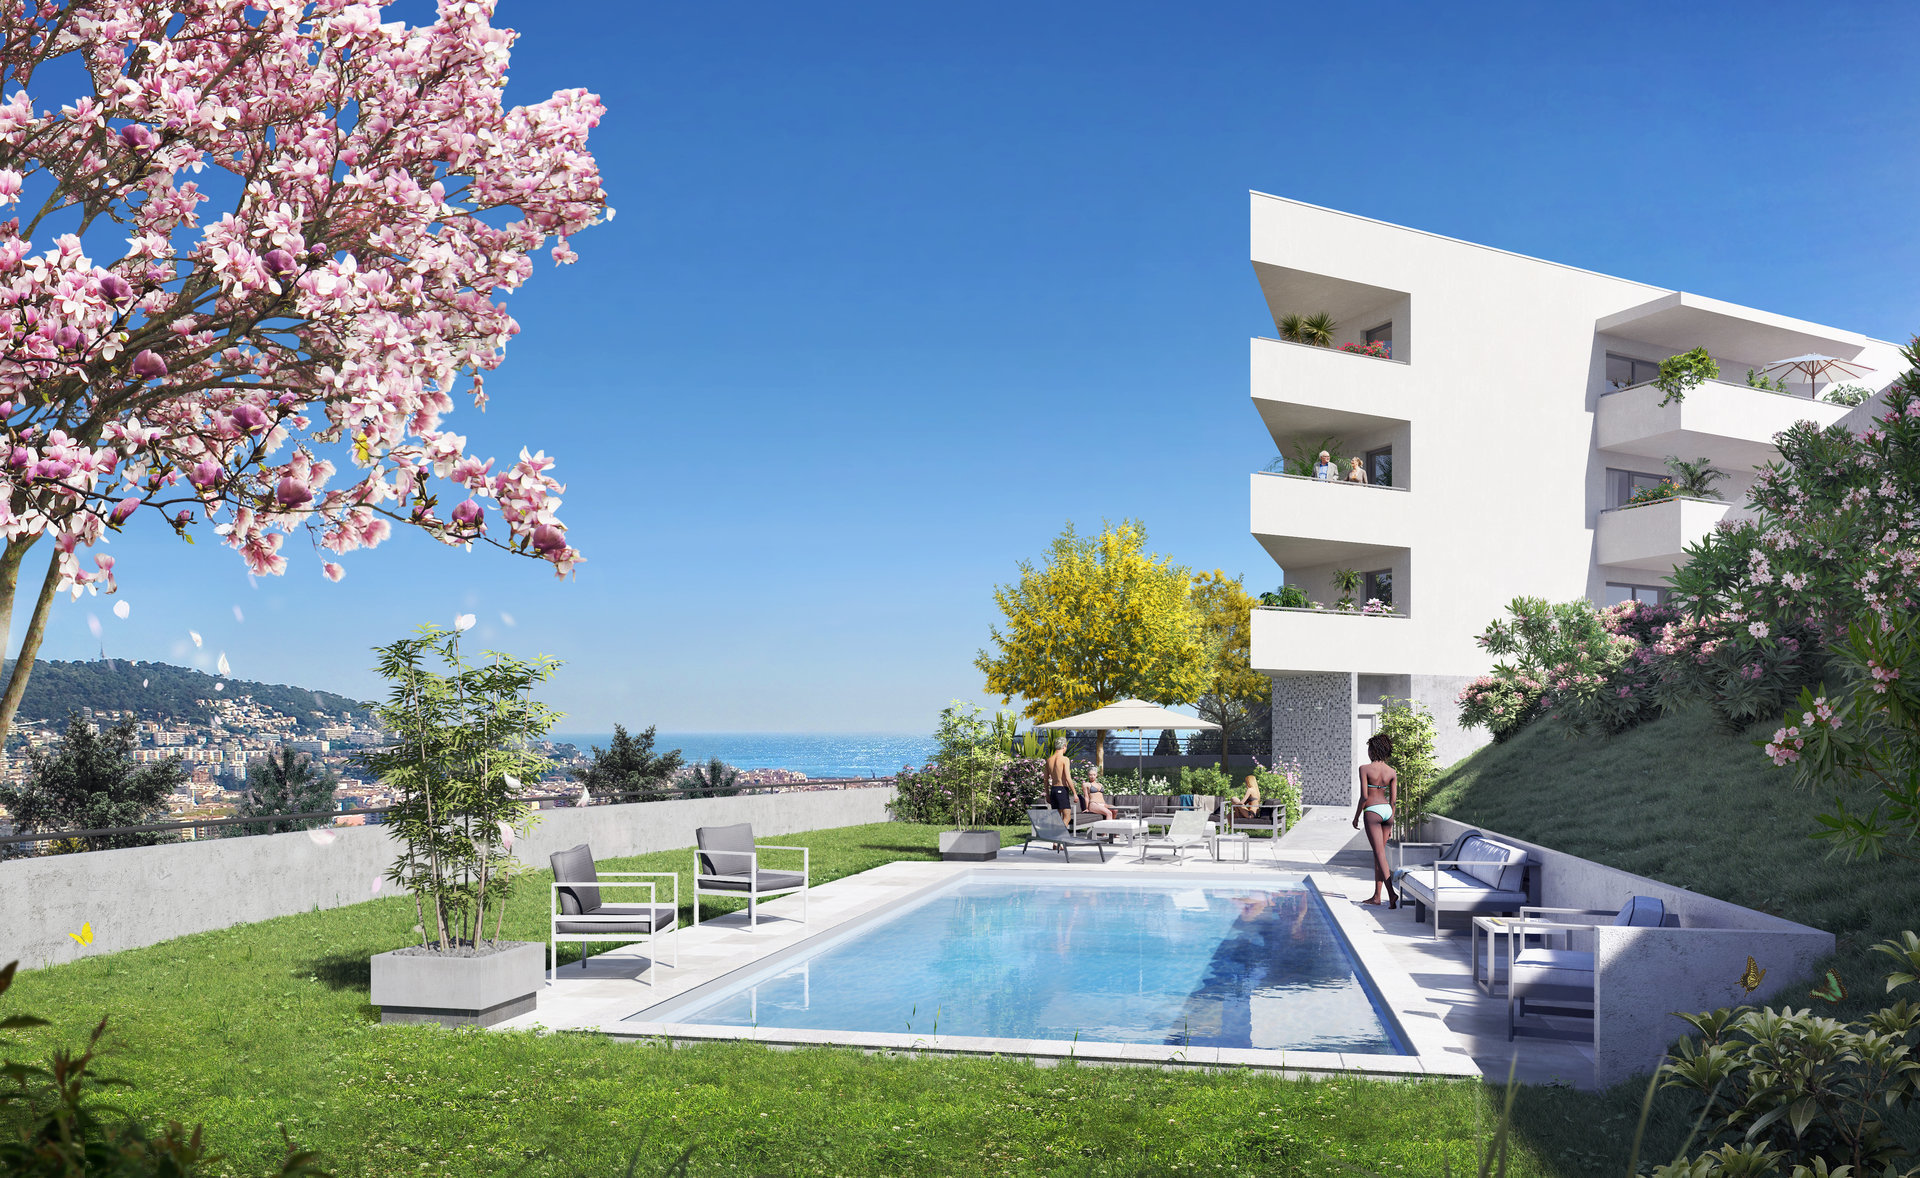 NICE - French Riviera - luxury 2 rooms Apartment with view